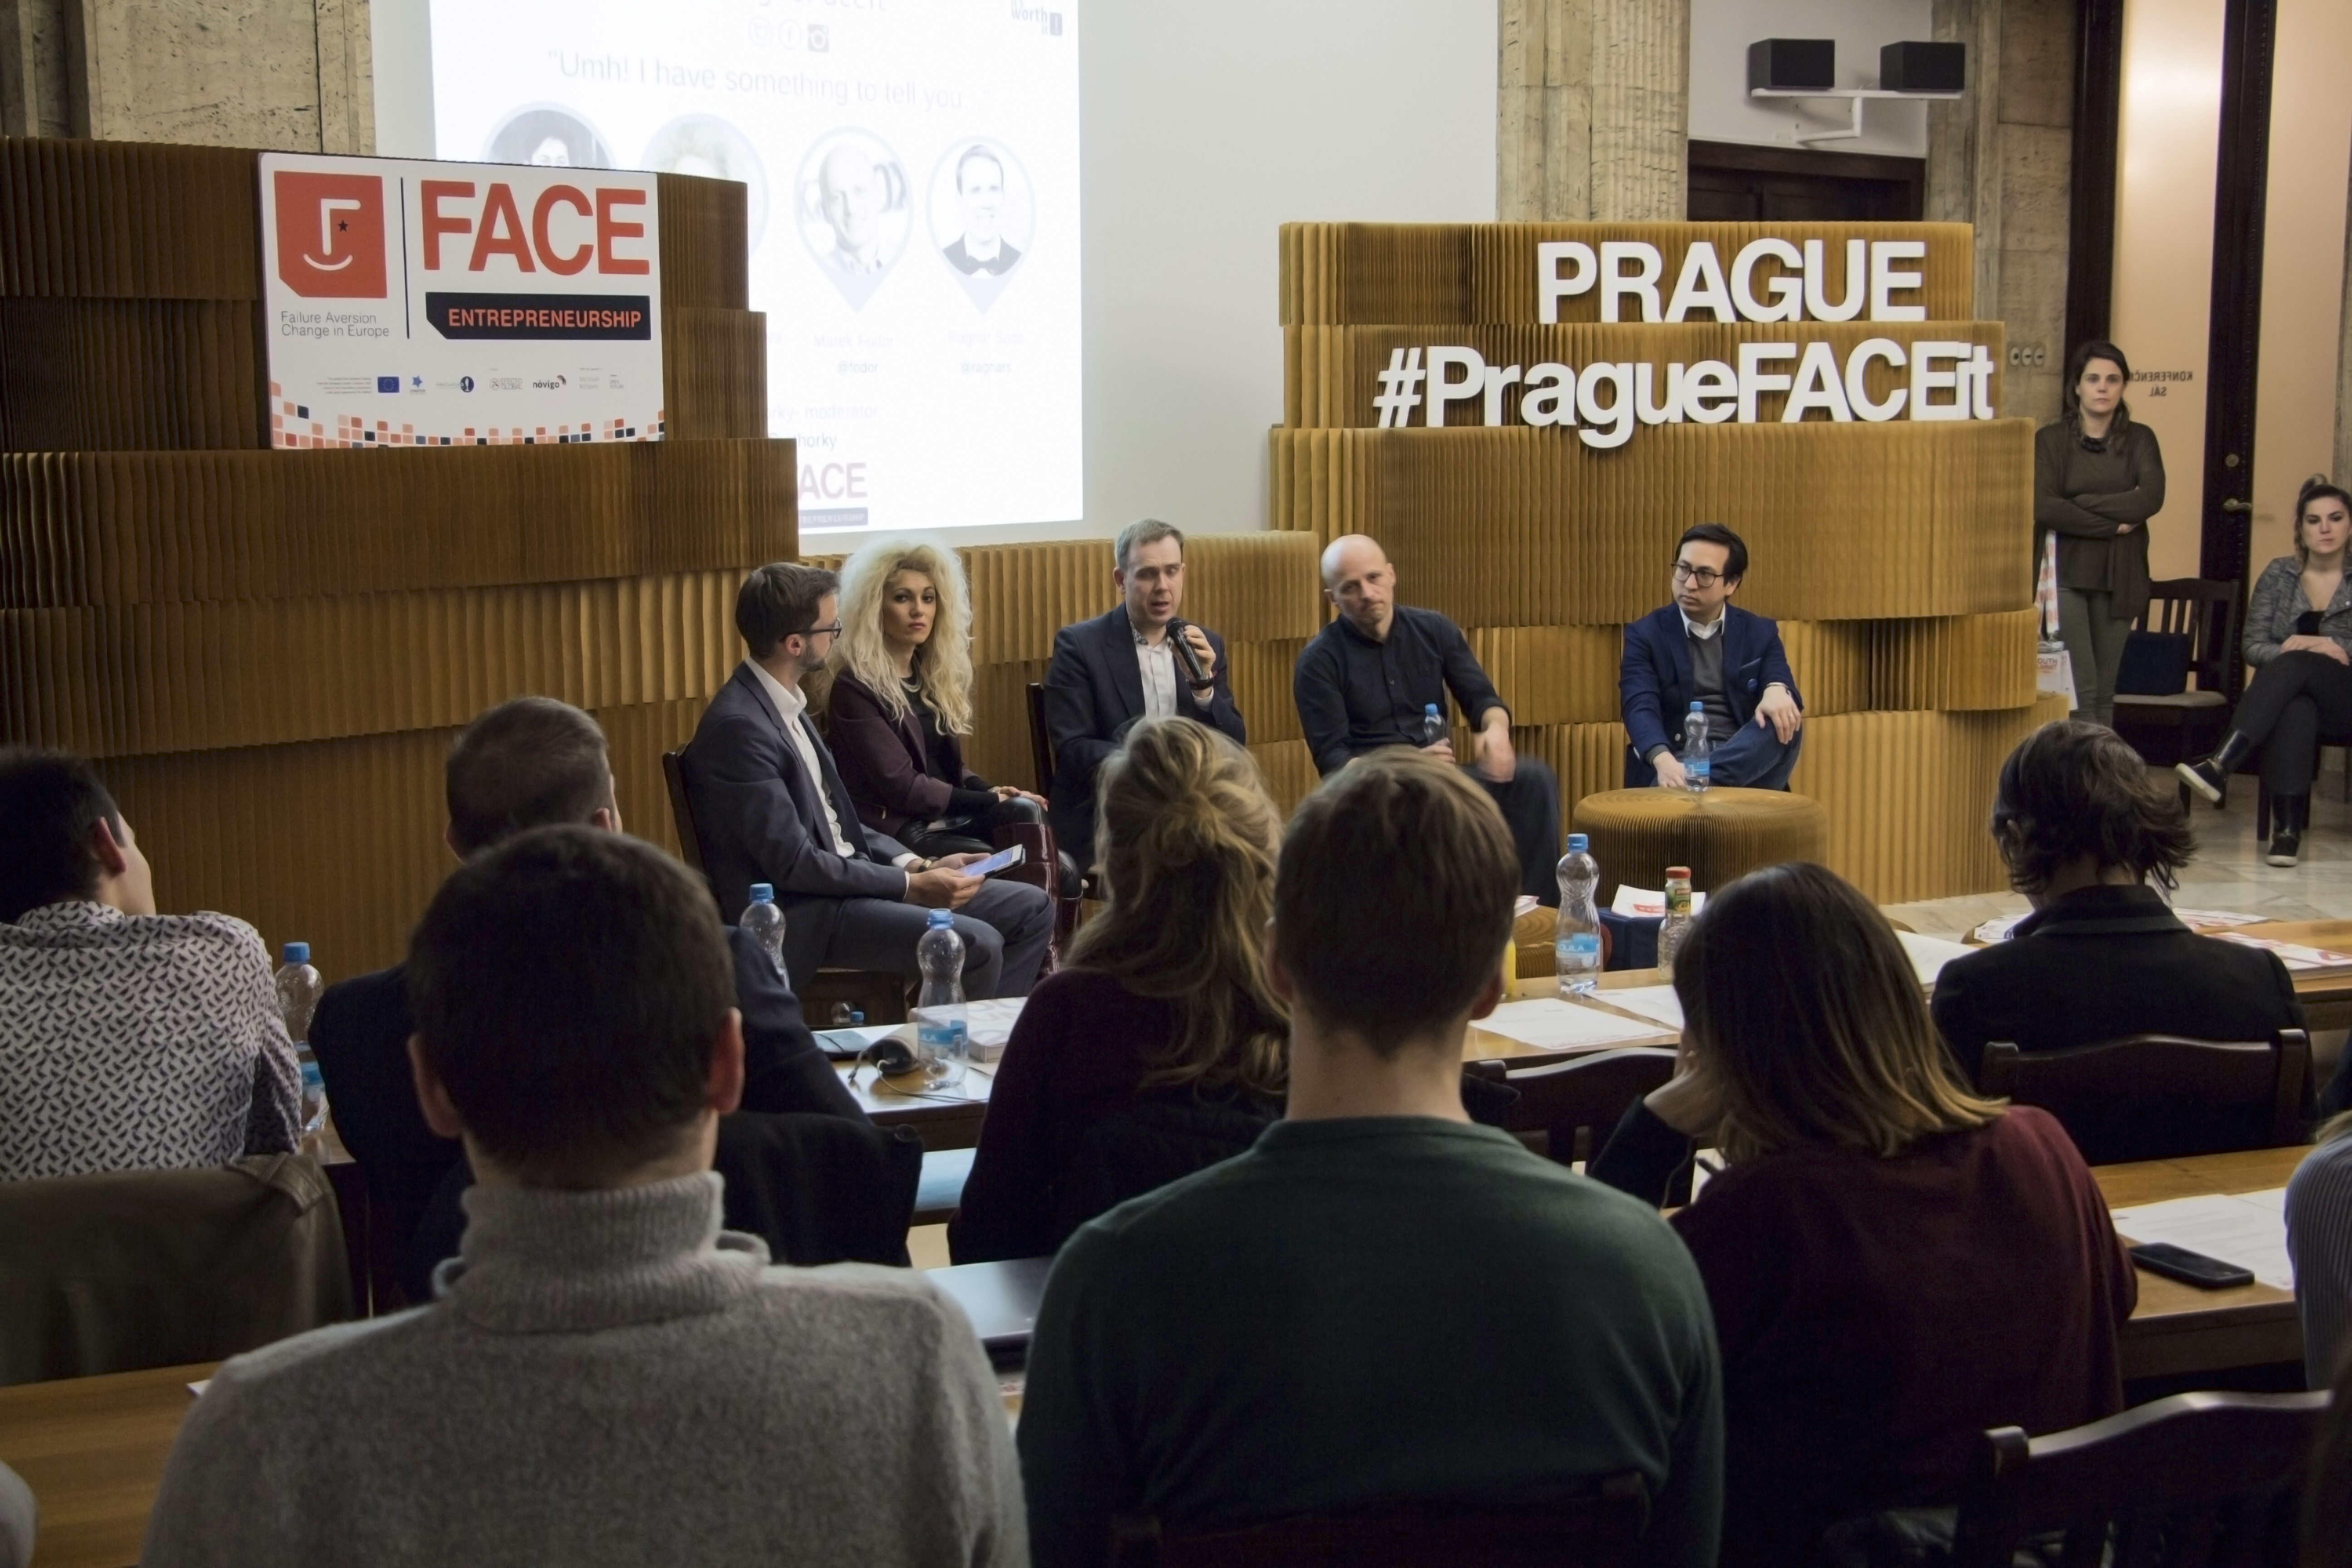 A FACE event in Prague. Pictured, from left to right: the CEO at Brand Embassy, Vitek Horky; the CEO and co-founder of BLITAB Technologies, Kristina Tsvetanova; a co-founder of Atrápalo and Kantox, Marek Fodor; a co-founder of Dashmote, Dennis Tan; and a co-founder of Pipedrive and Garage48 hackathons, Ragnar Sass.